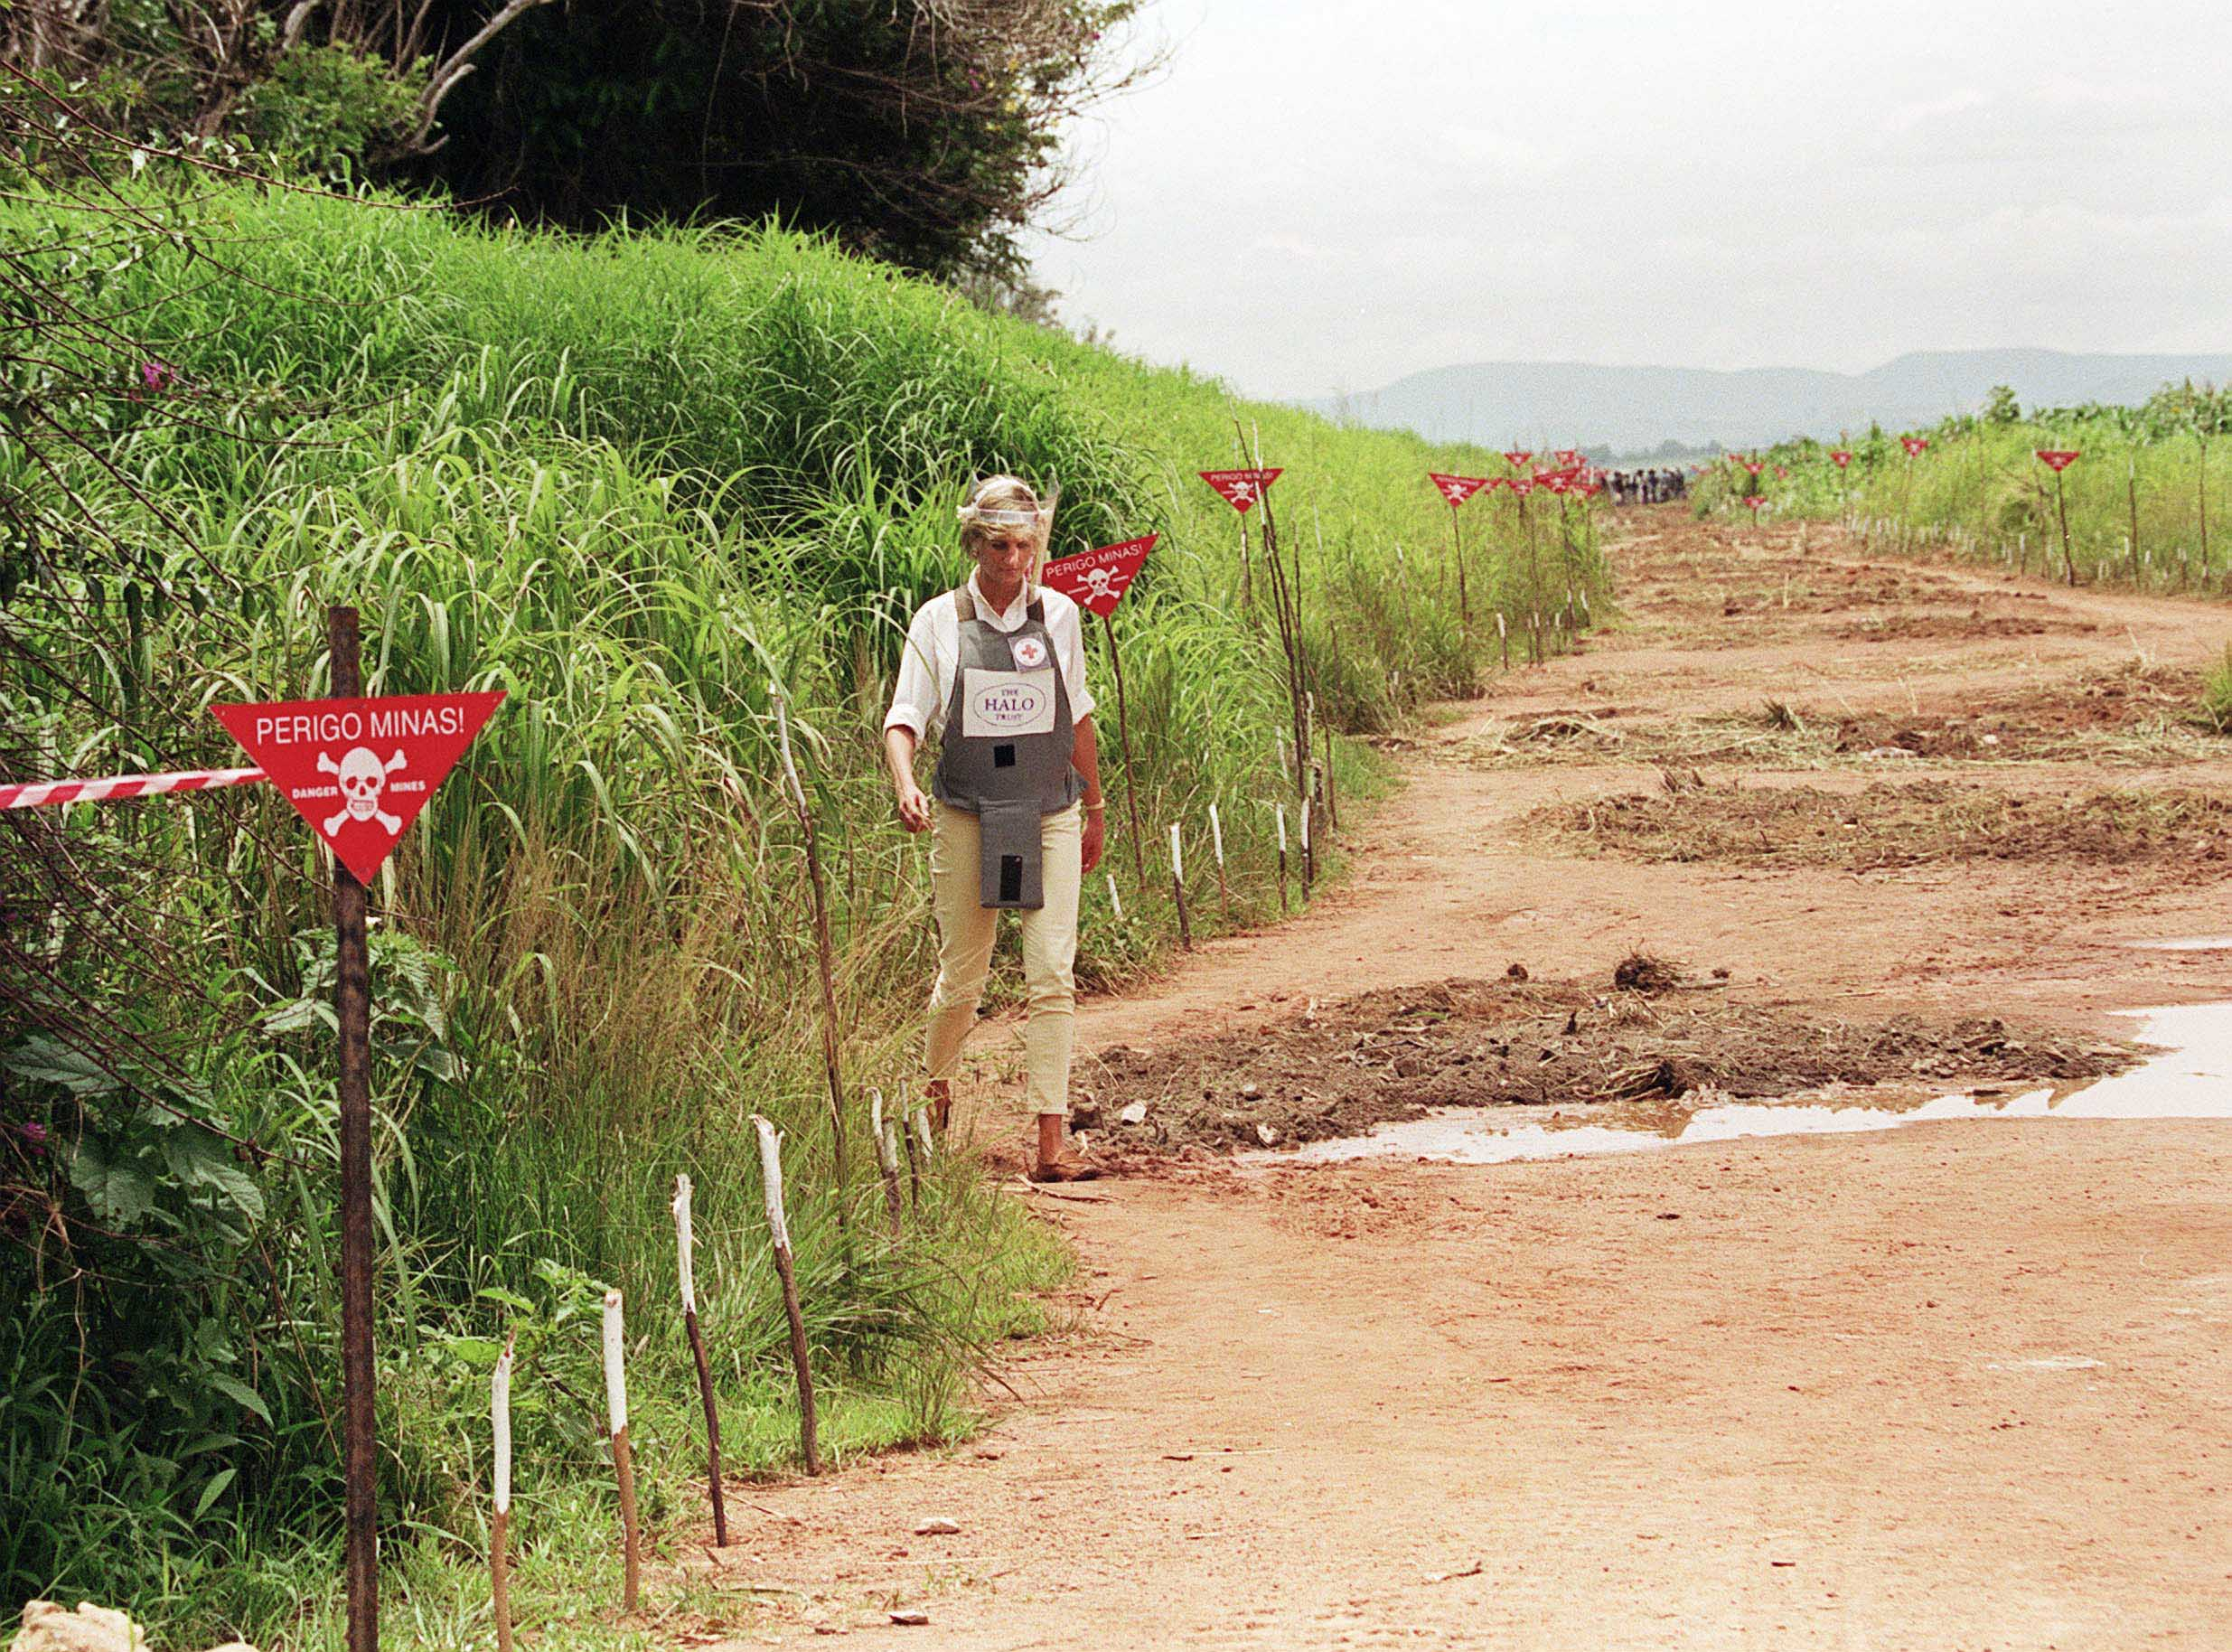 Princess Diana walking through a minefield in Angola to highlight the work of the HALO Trust © Anwar Hussein